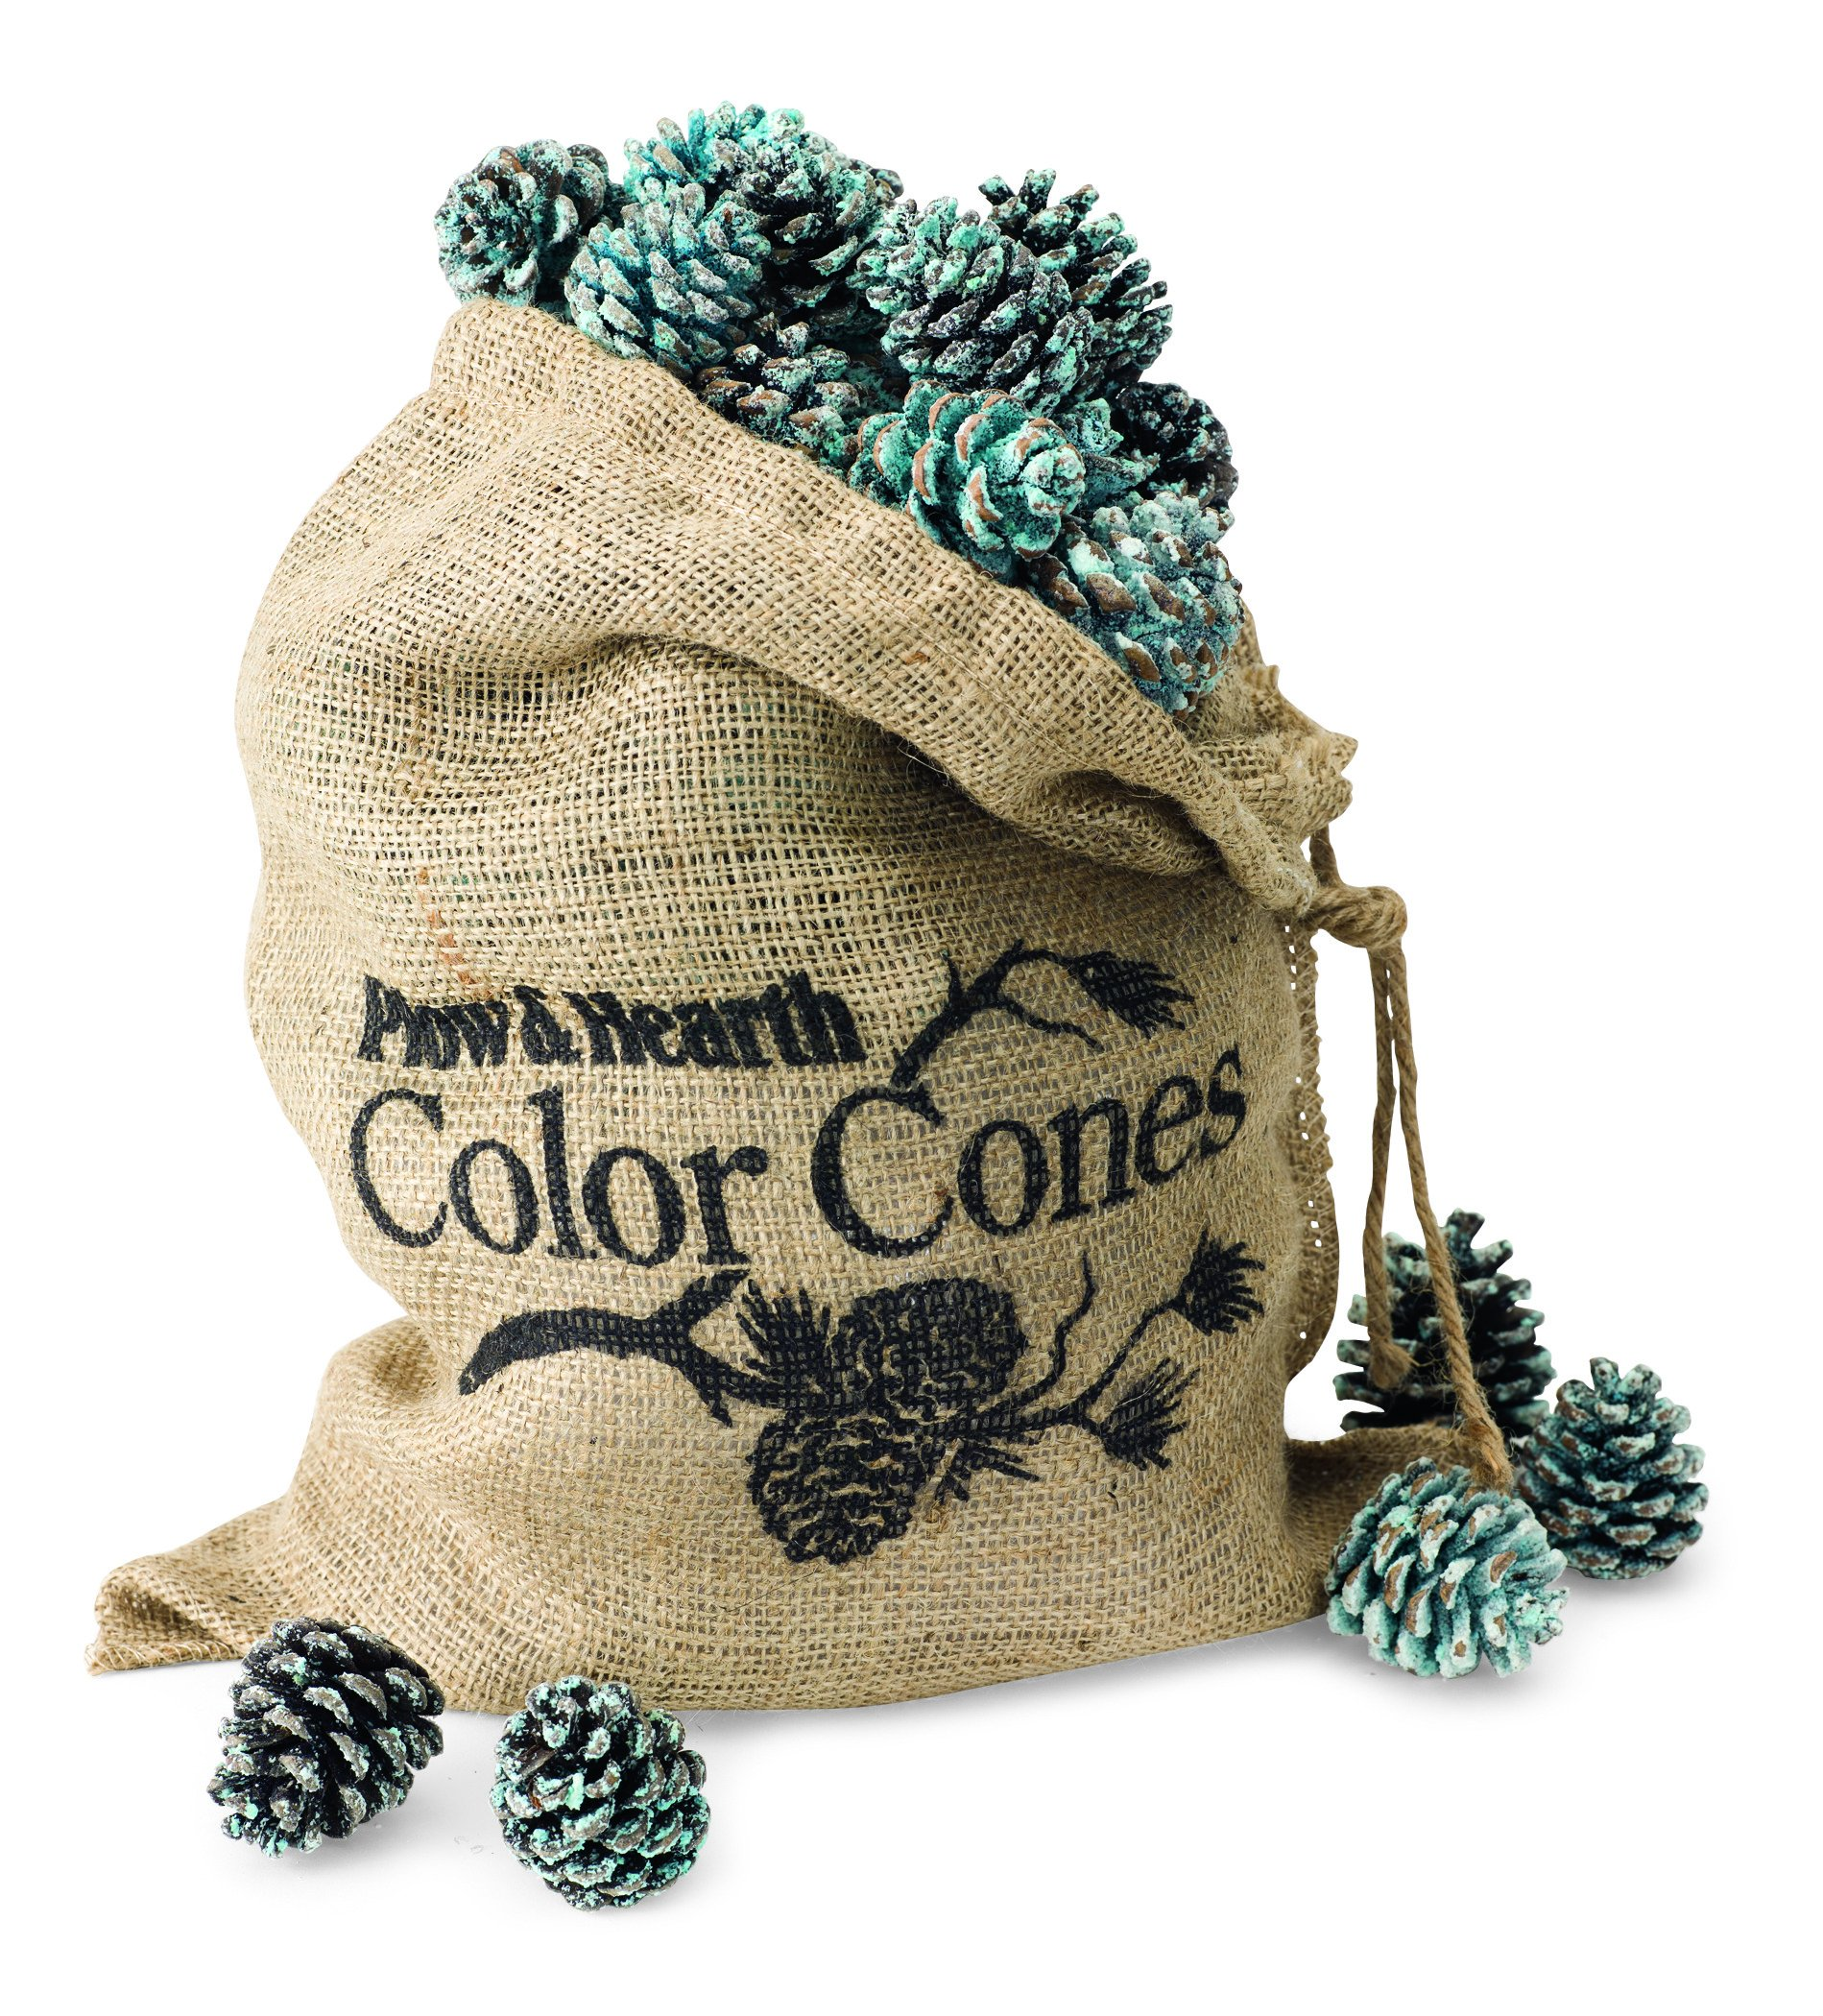 Plow & Hearth Fireplace Color Changing Pine Cones Wood Burning Accessories by Plow & Hearth